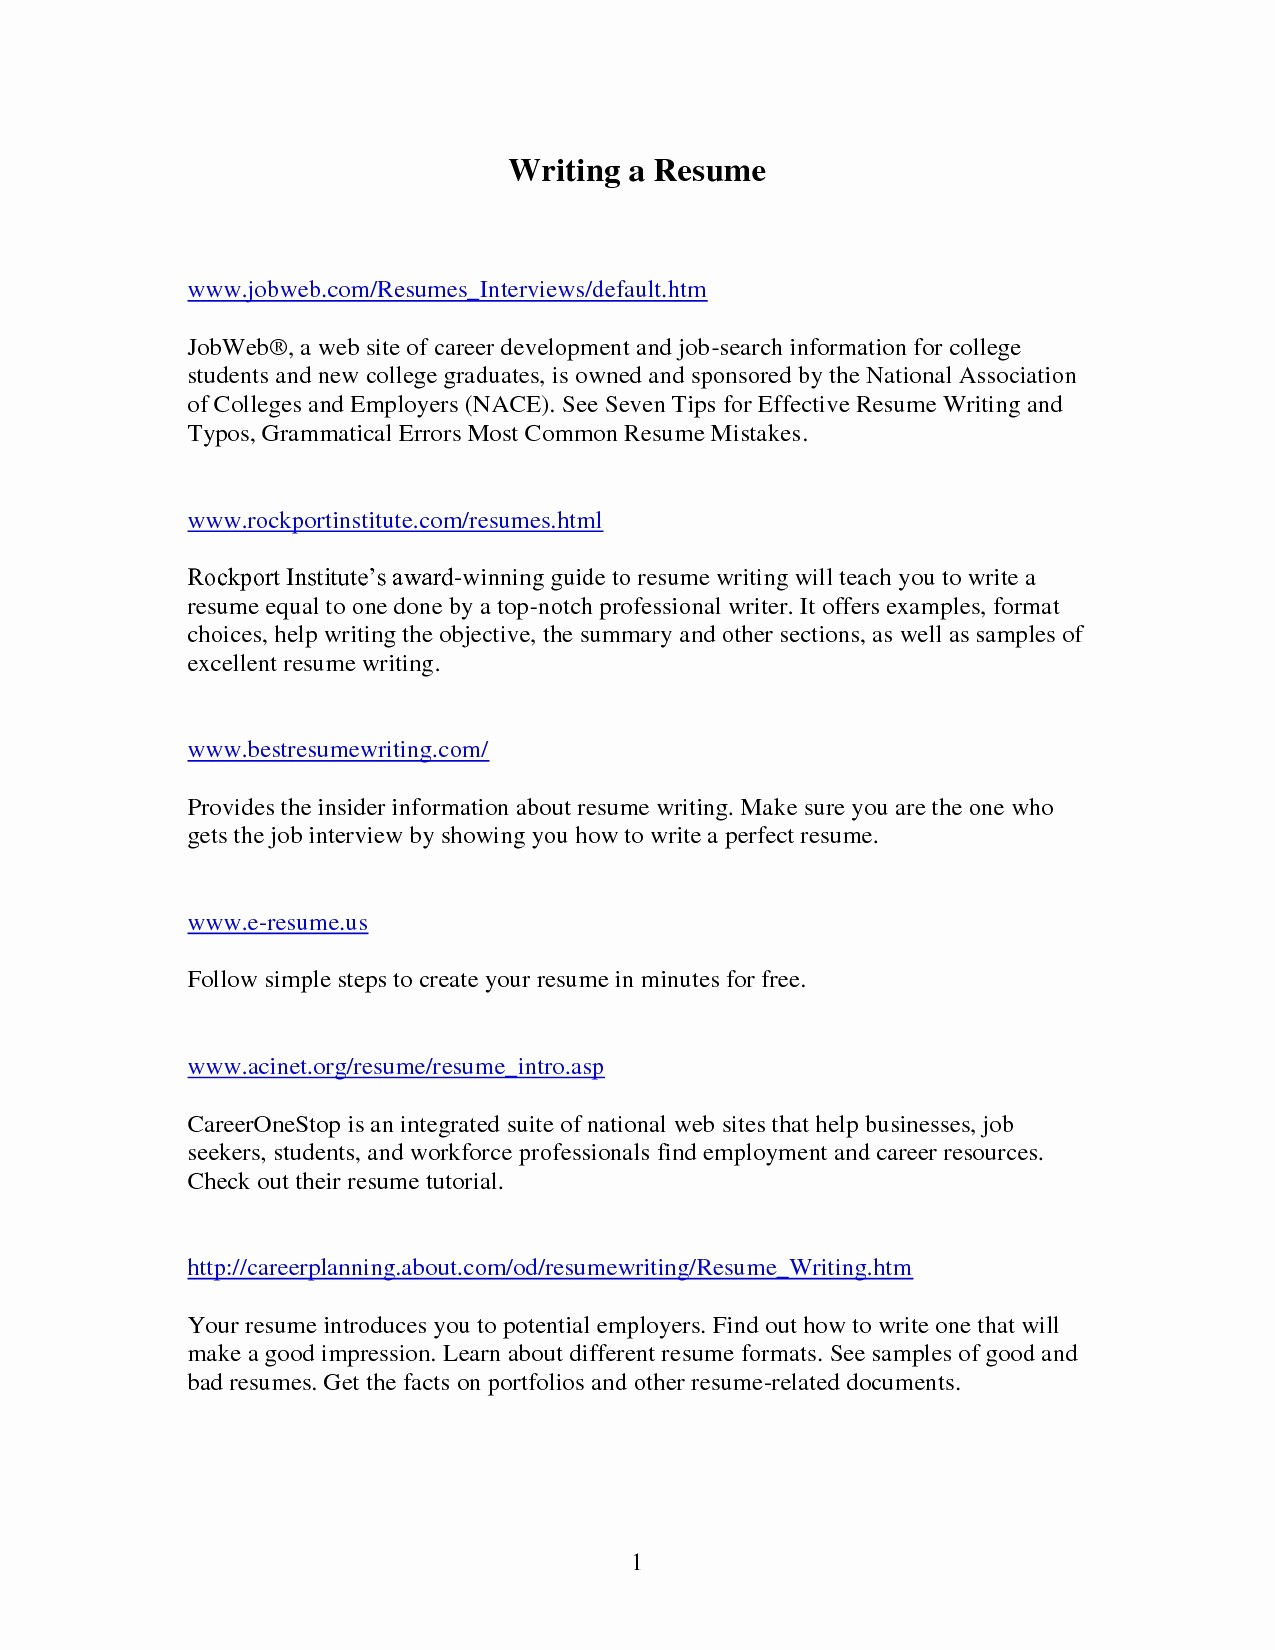 Store Manager Job Description for Resume - 20 Store Manager Job Description for Resume